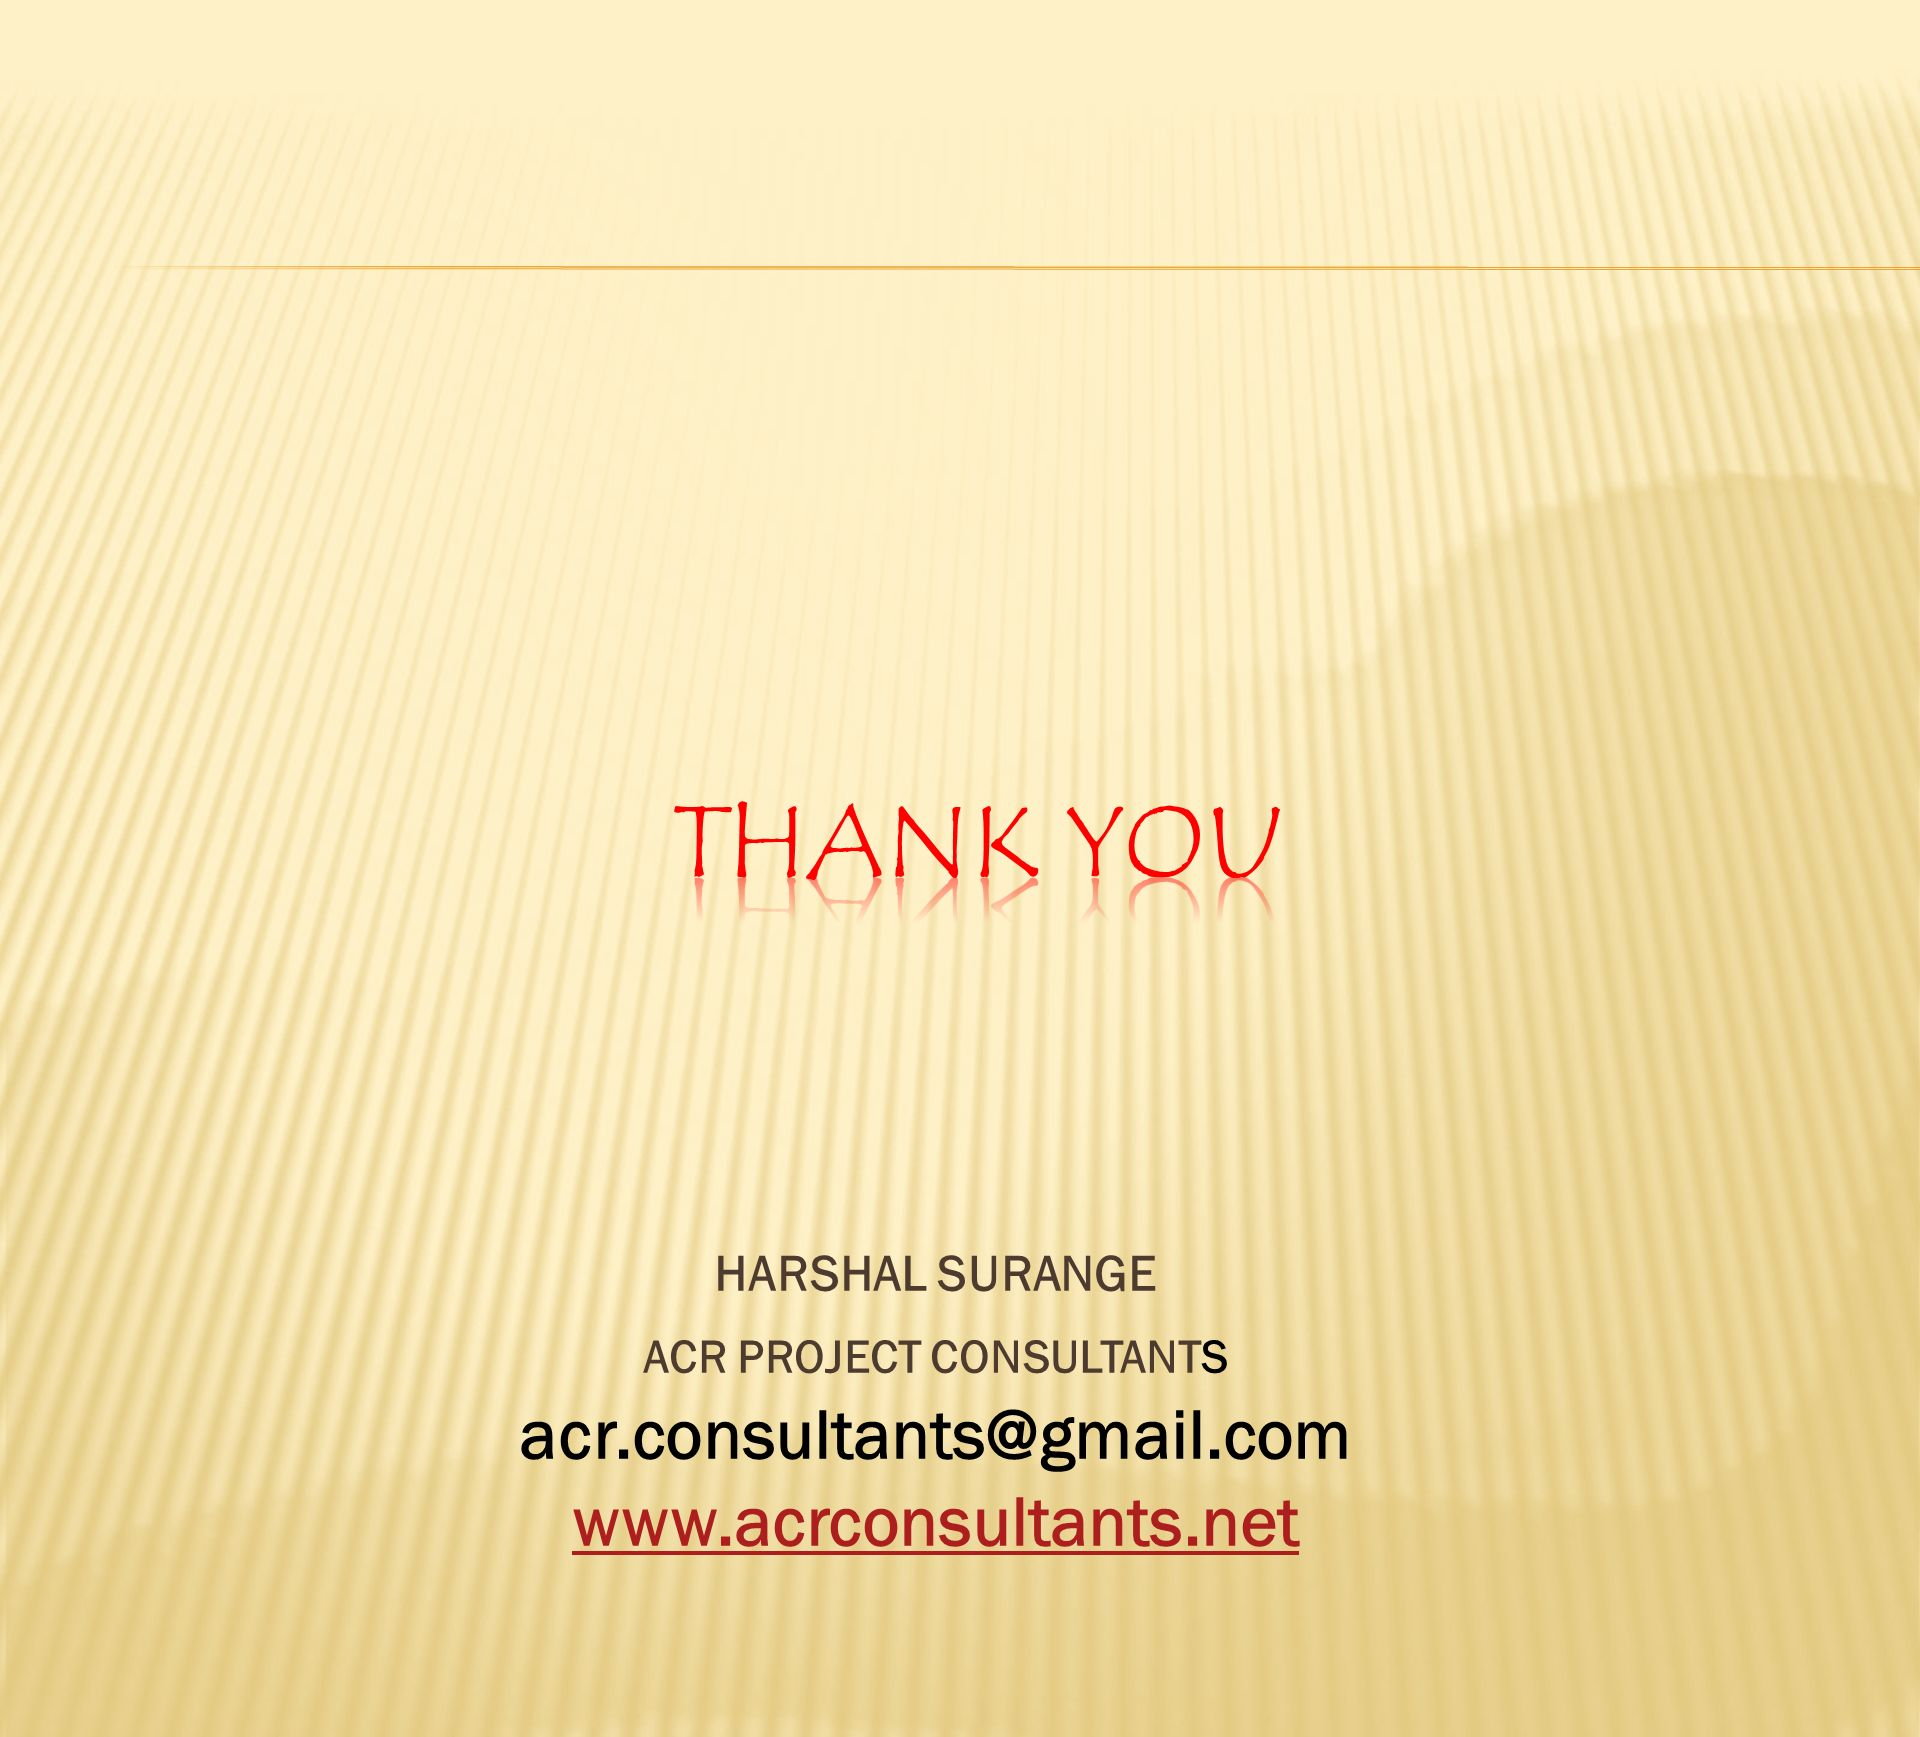 HARSHAL SURANGE ACR PROJECT CONSULTANTS acr.consultants@gmail.com www.acrconsultants.net